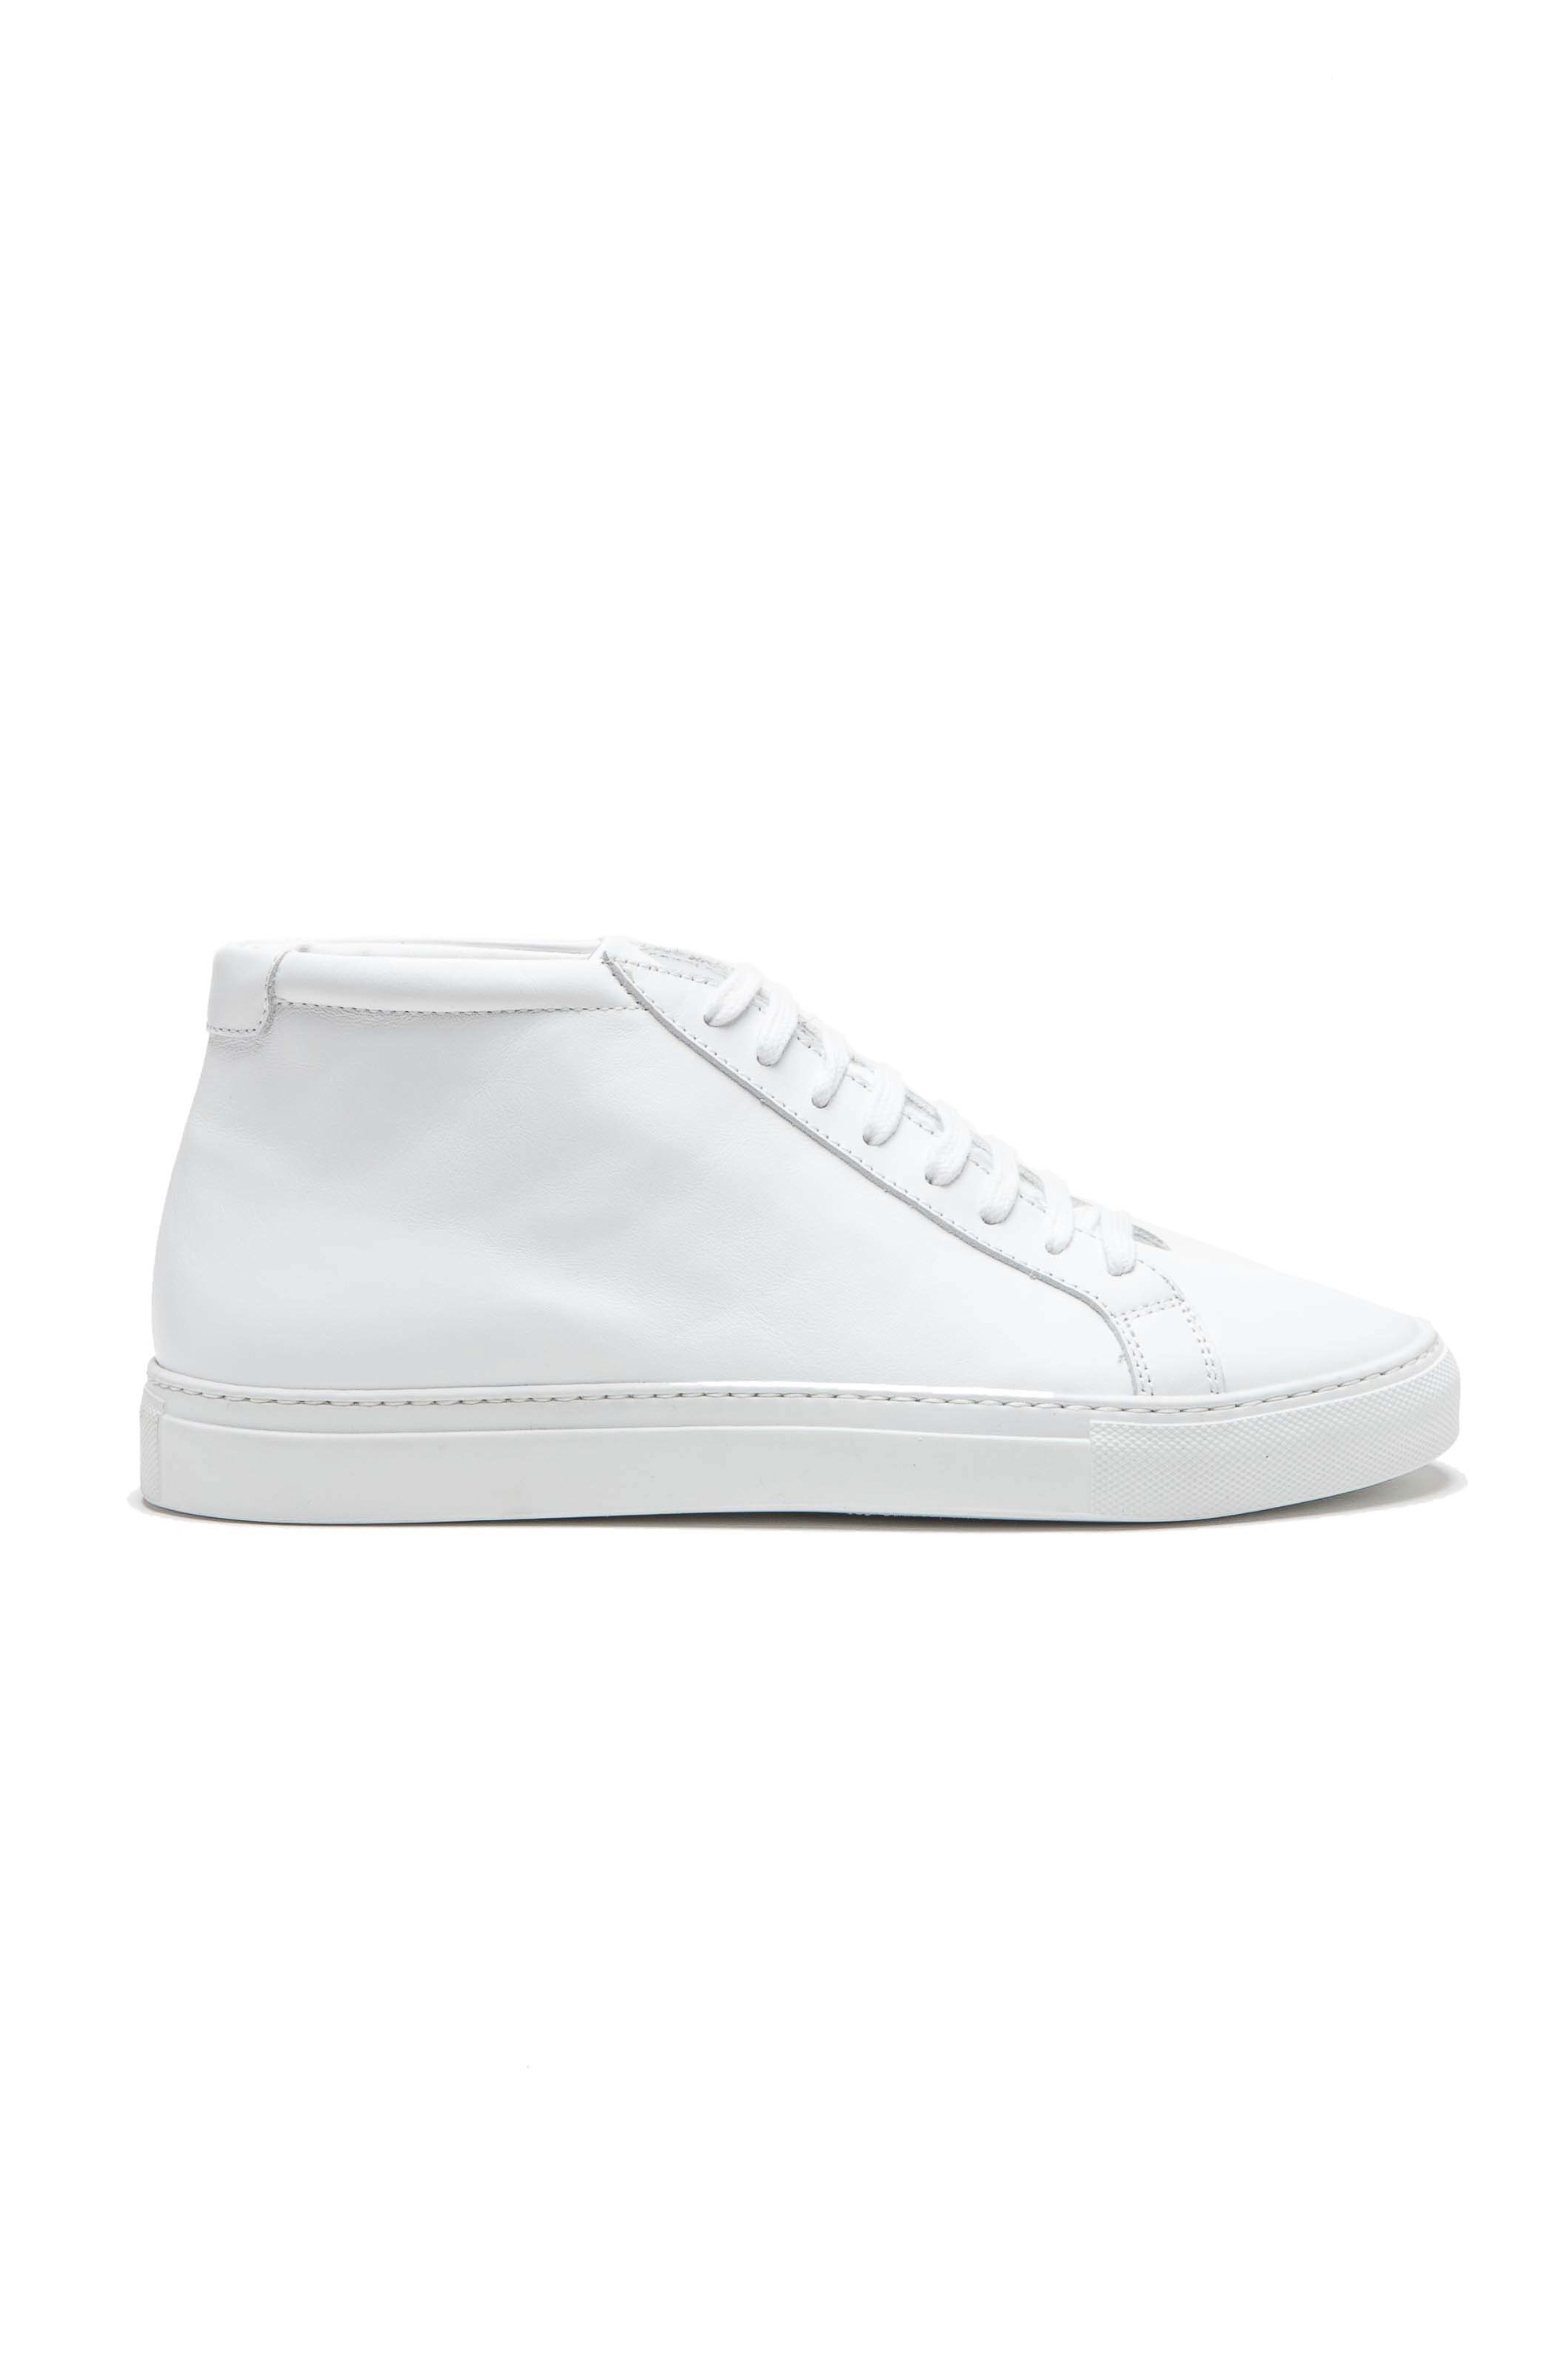 SBU 01523_19AW Mid top lace up sneakers in white calfskin leather 01